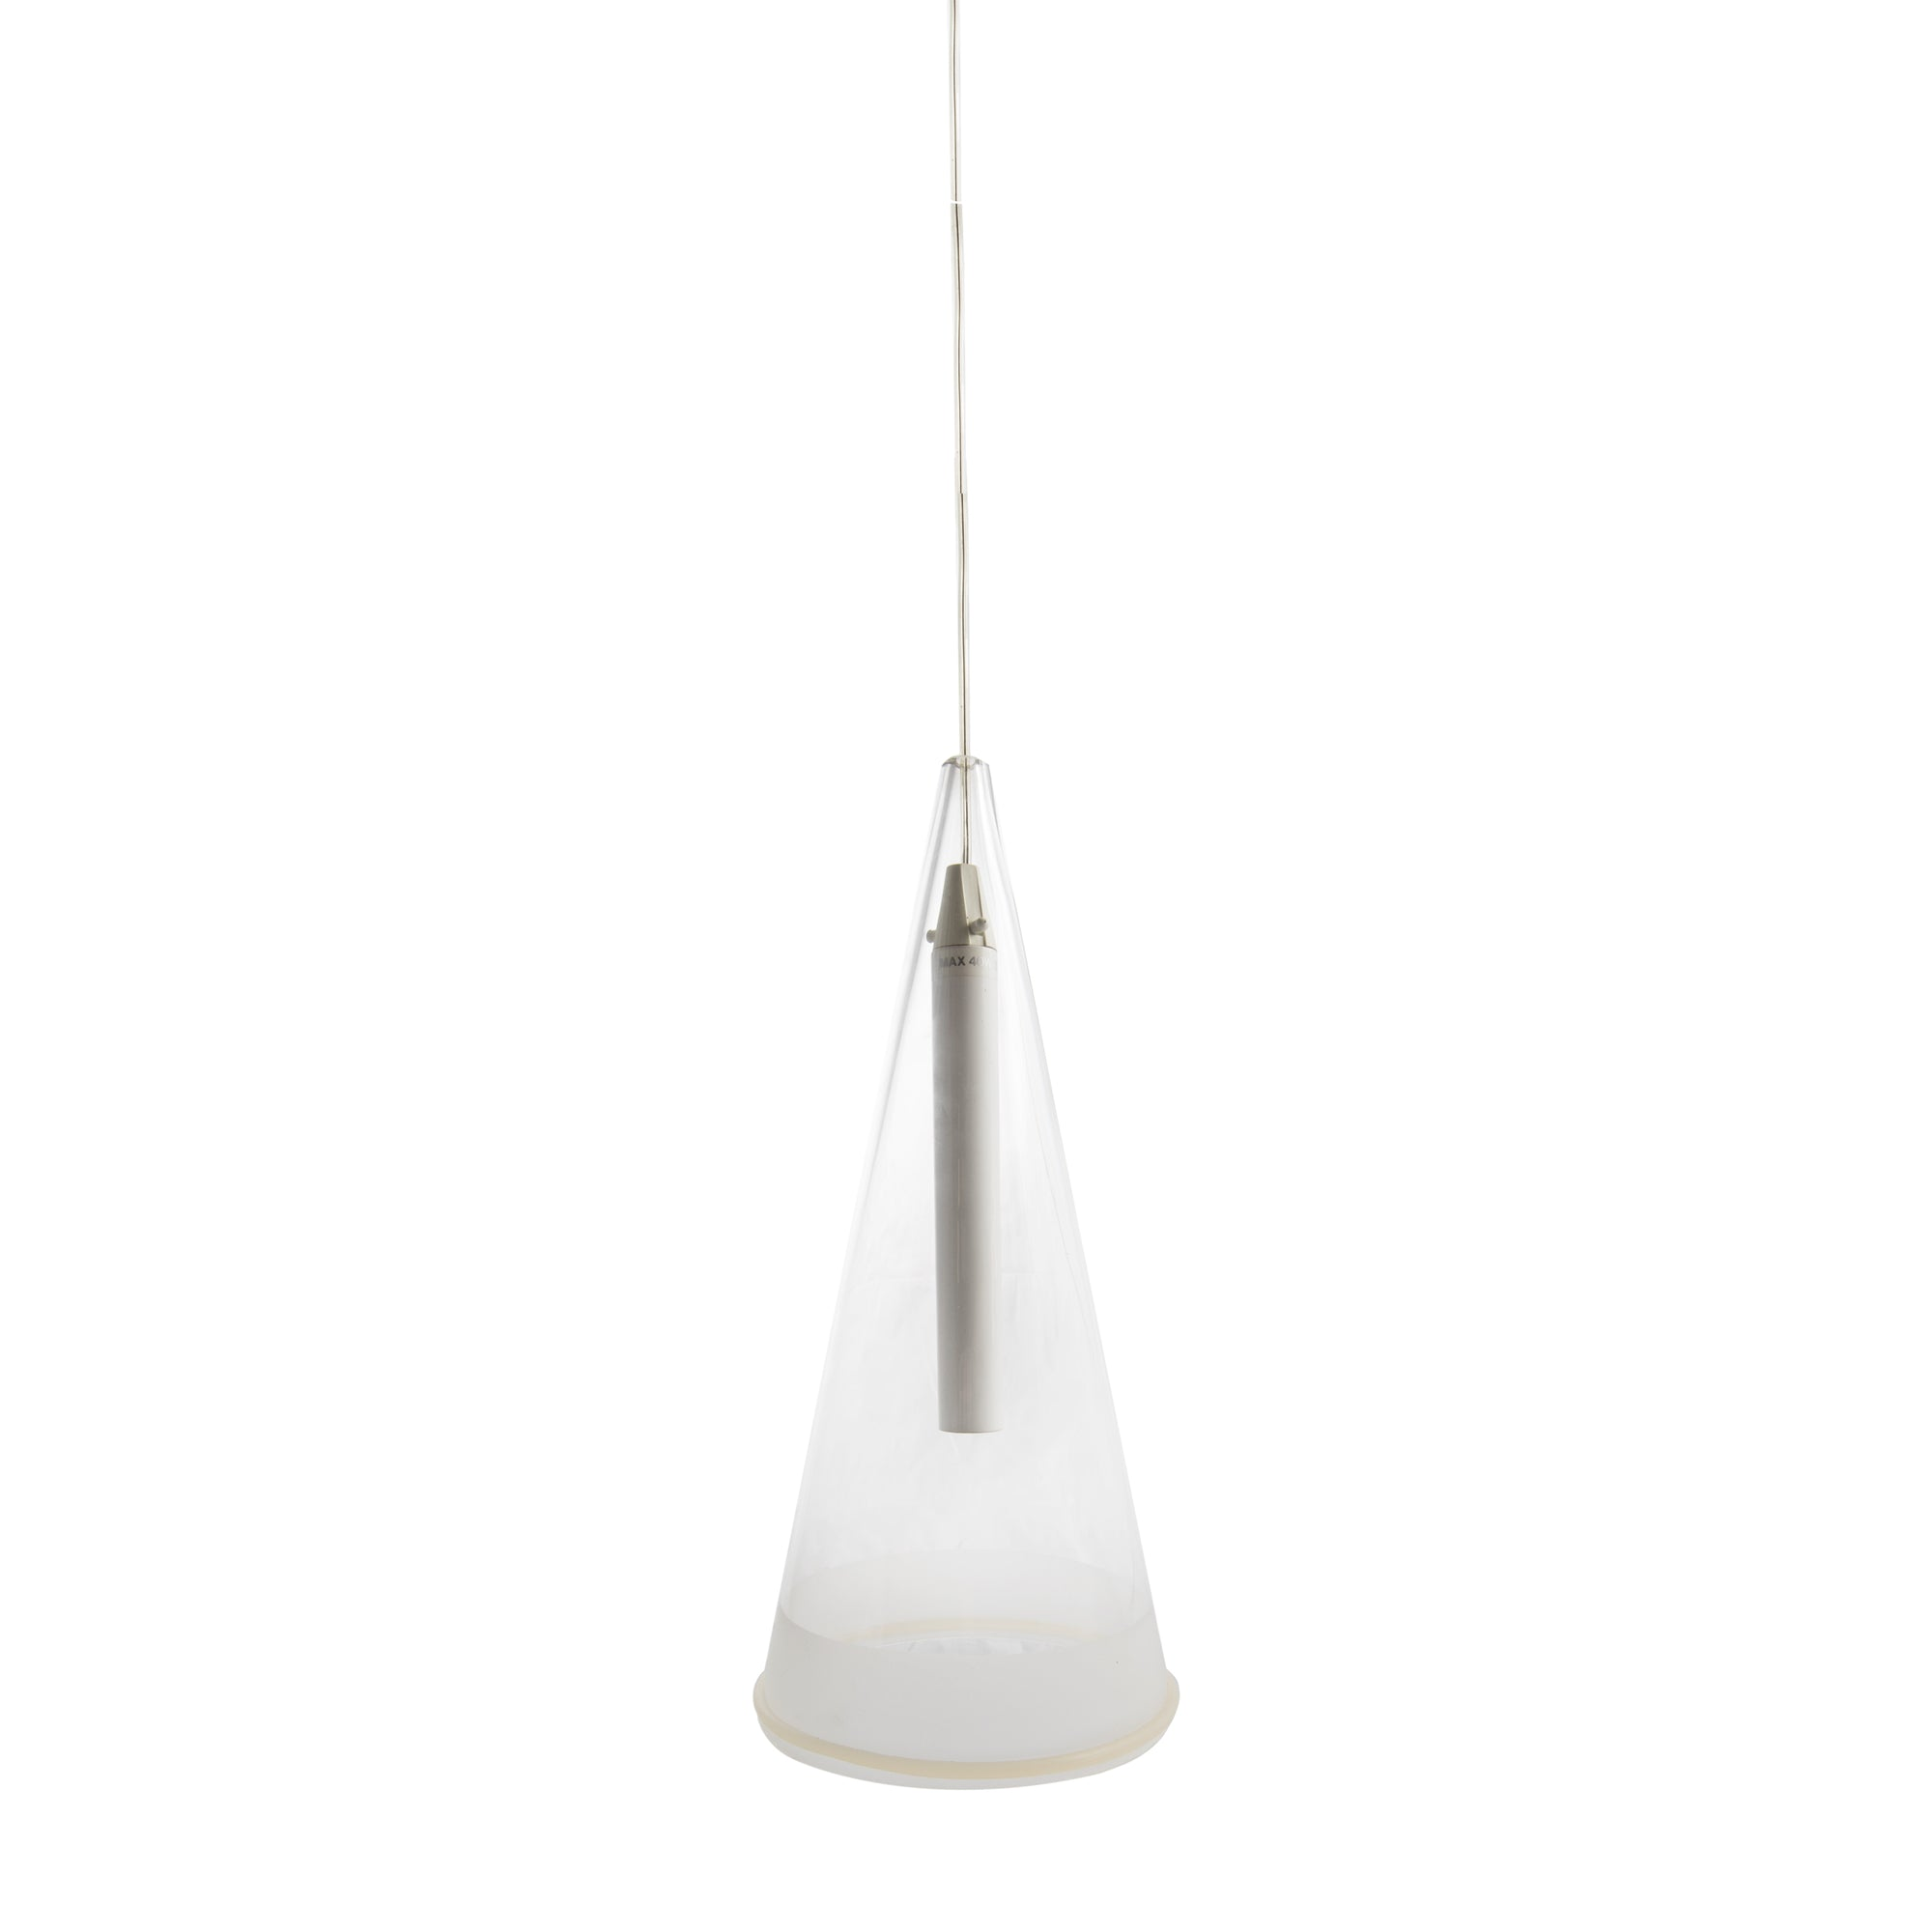 Reclaimed Flos Fucsia Cone Suspended Light